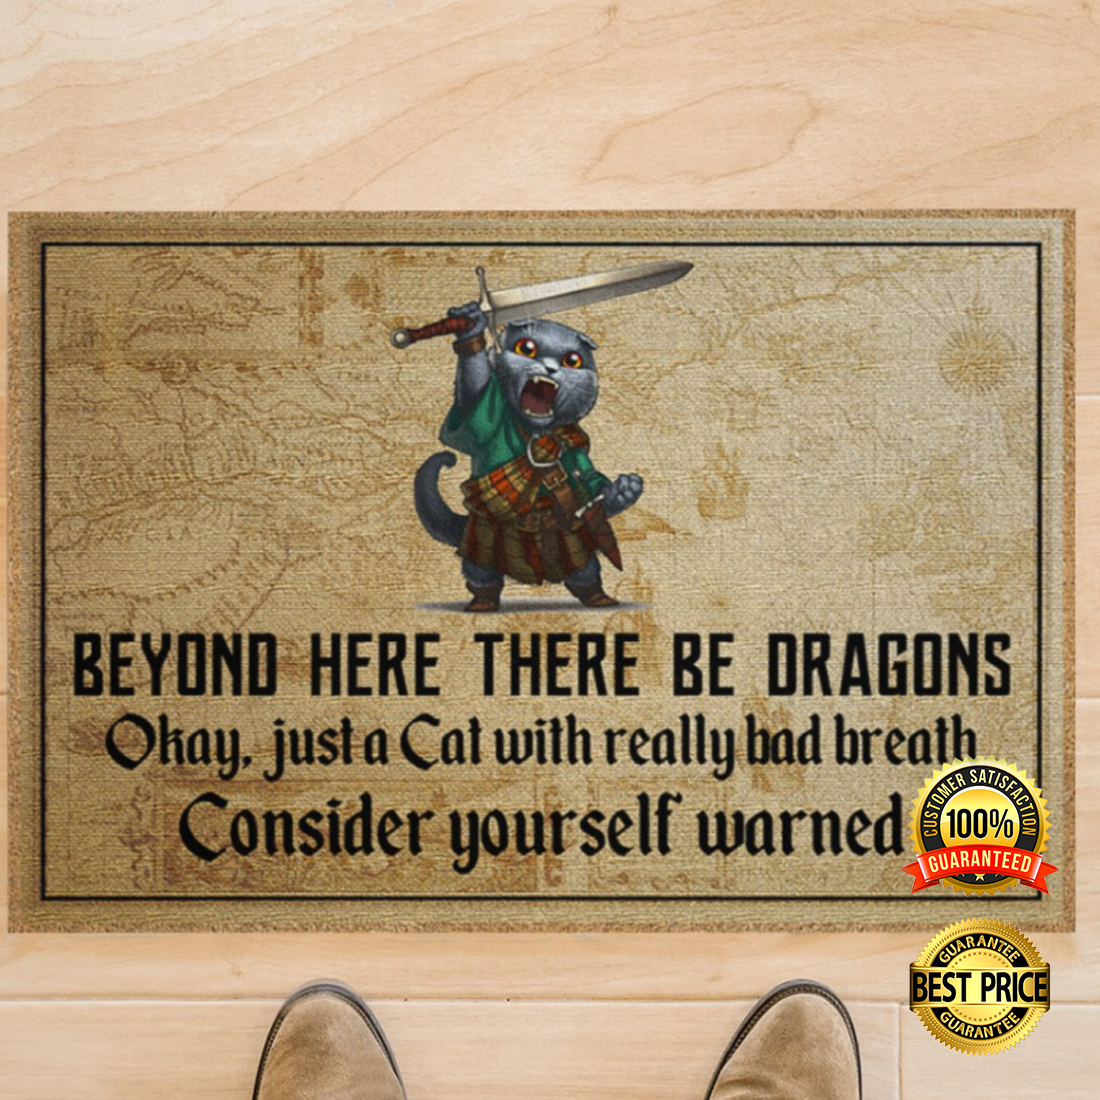 BEYOND HERE THERE BE DRAGONS OKAY JUST A CAT WITH REALLY BAD BREATH DOORMAT 5